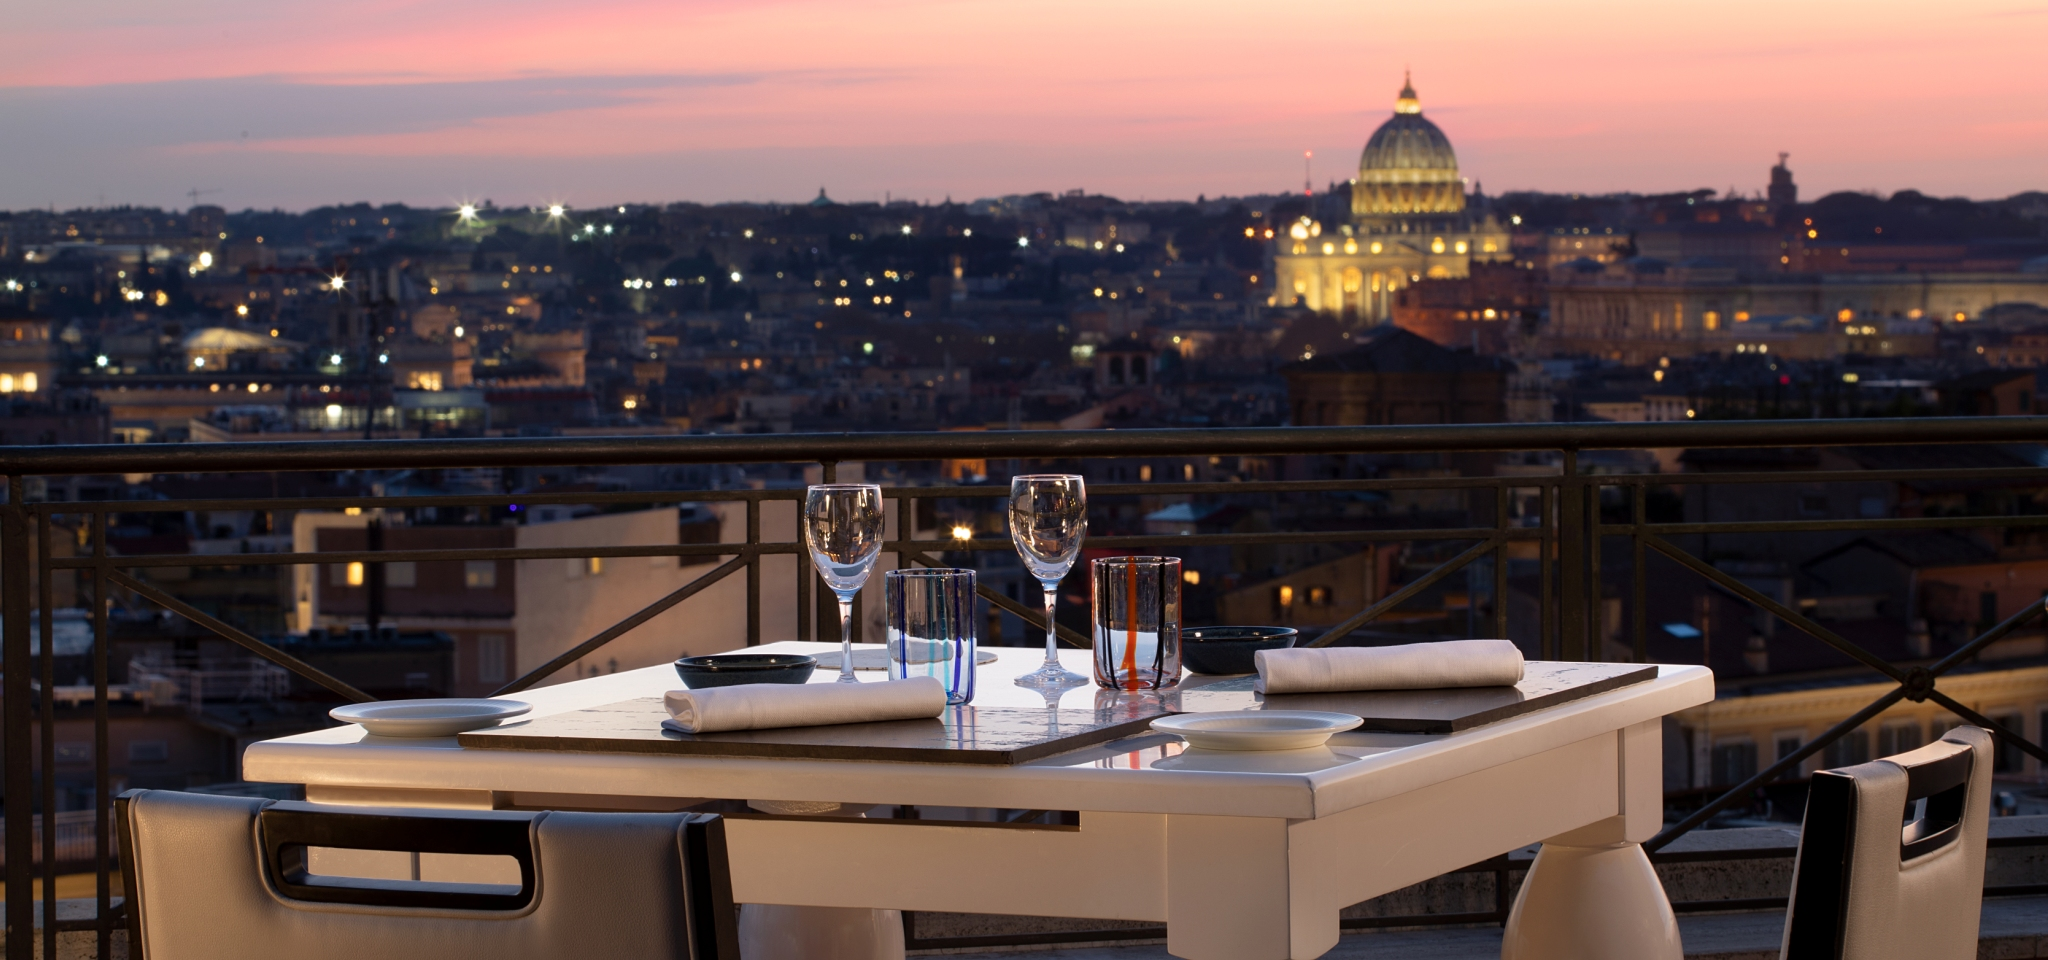 The Flair Restaurant Rome Restaurants With A View Bernini